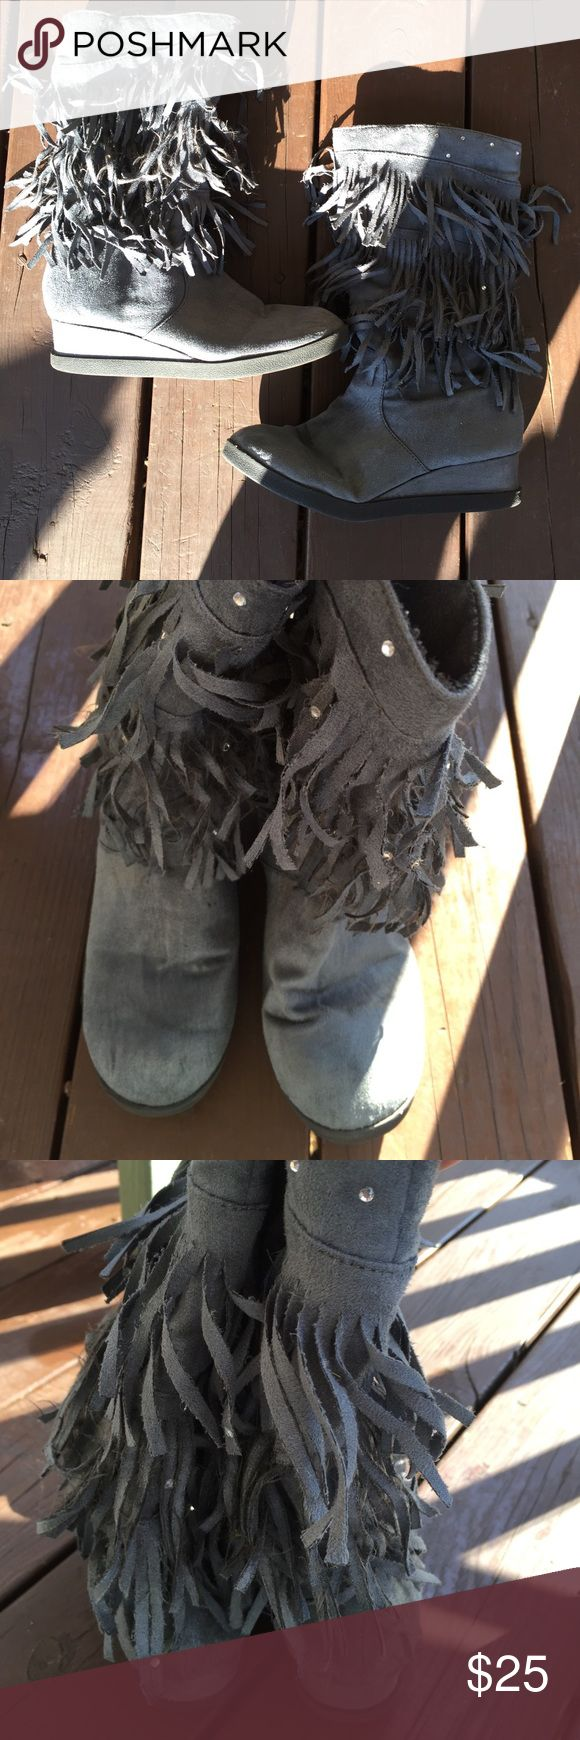 Justice gray fringe boots size 8. Justice gray fringe boots size 8. This is a great pair of preowned fringe booties. These are ladies size 8. They have a full side zipper and a small wedge heel. They are in great shape. Please view all pictures. Justice Shoes Heeled Boots